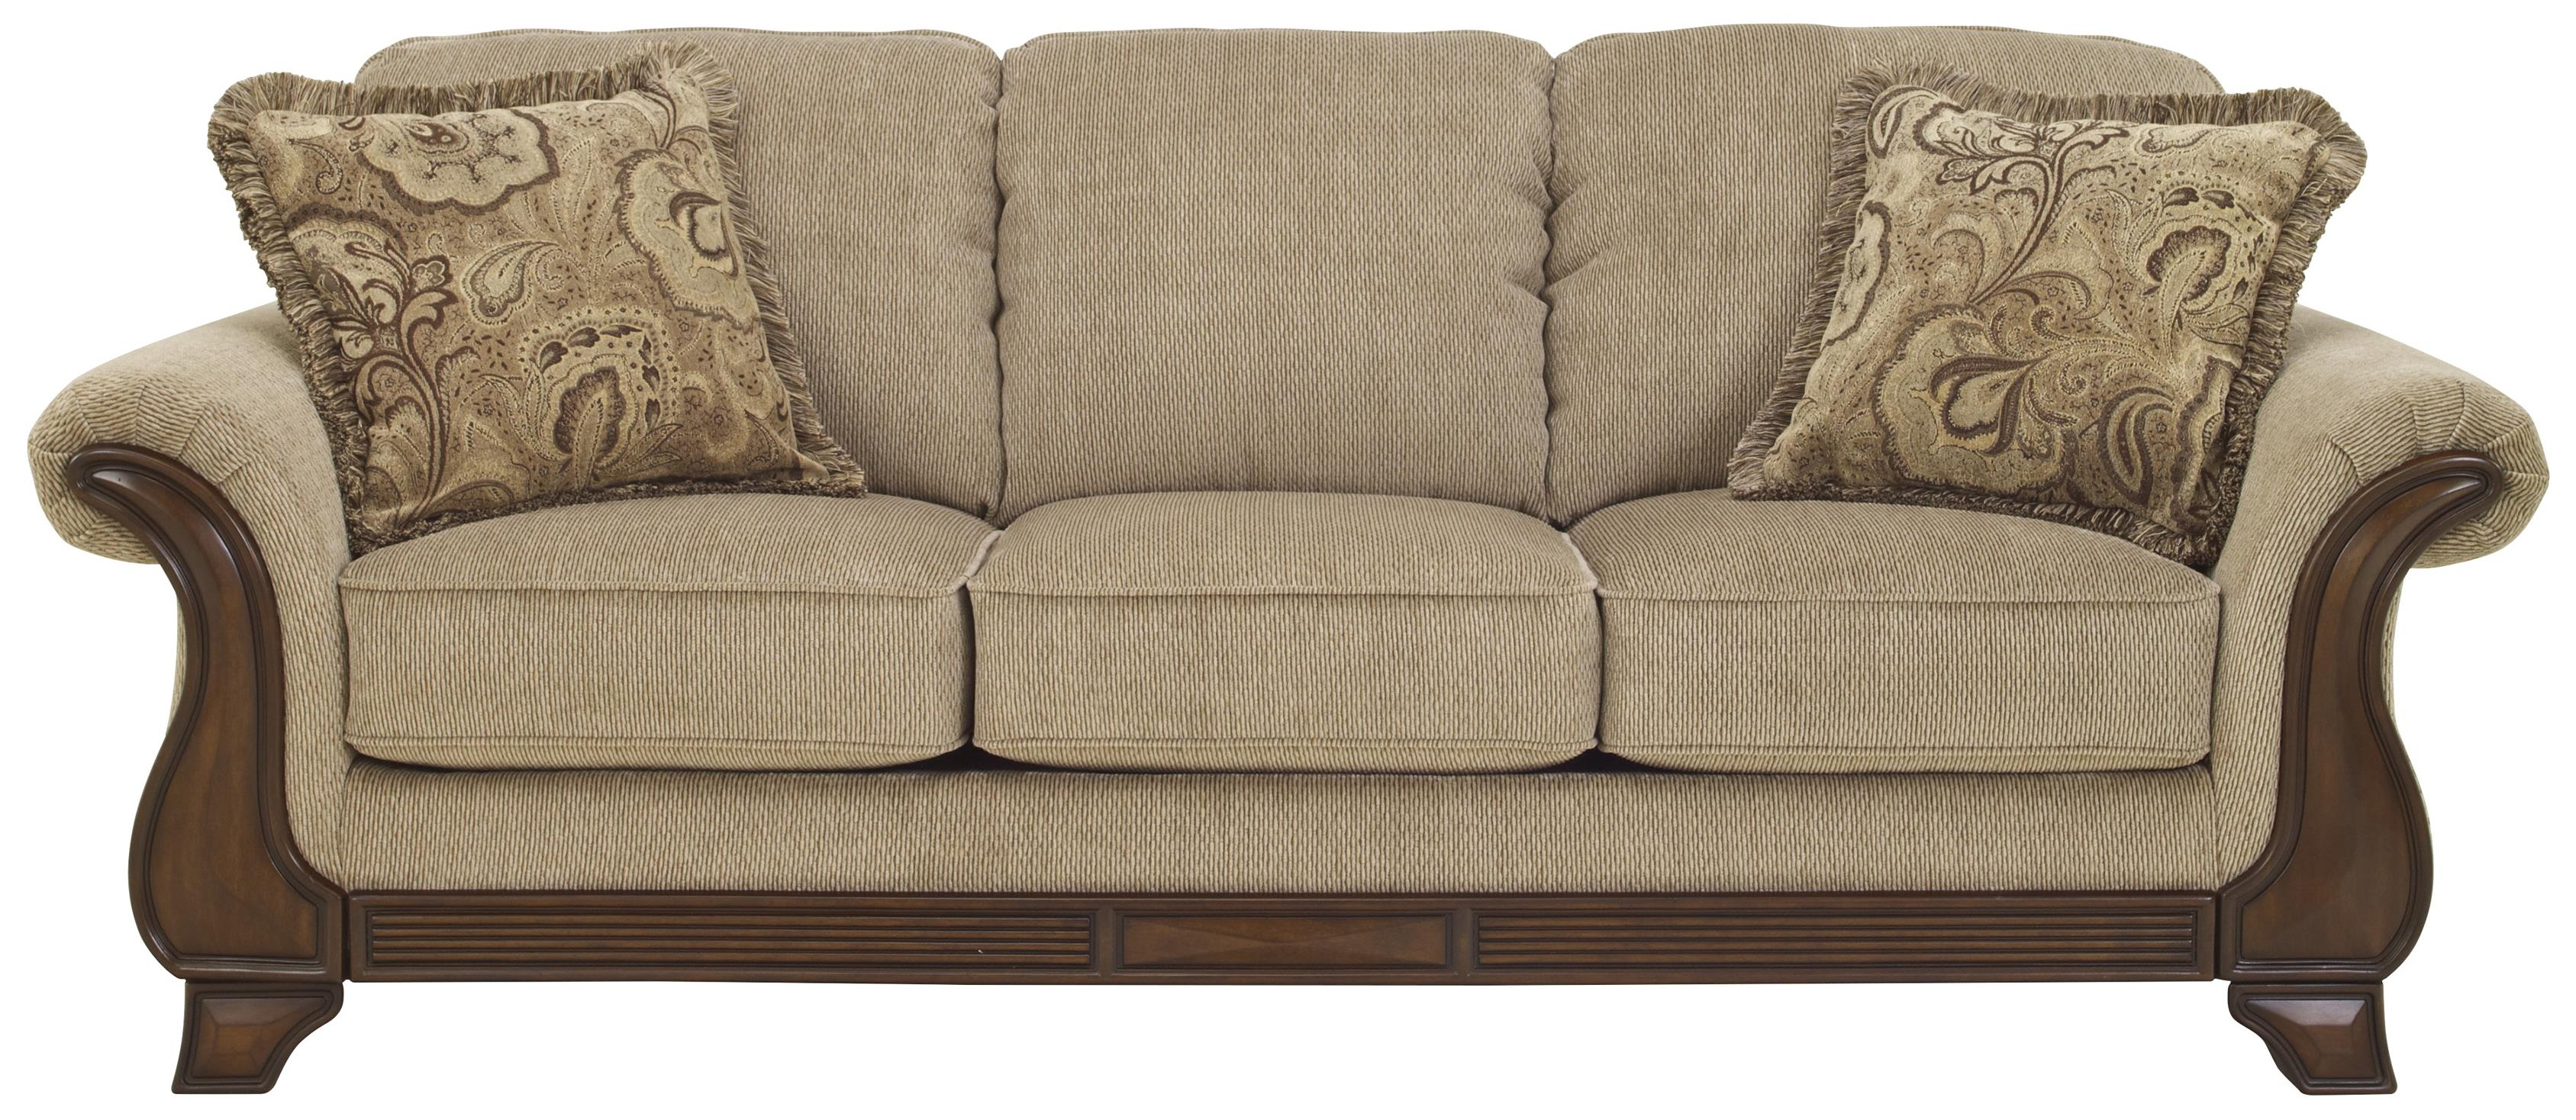 Brand new Sofa with Flared Arms & Exposed Wood Accents by Signature Design  JR56